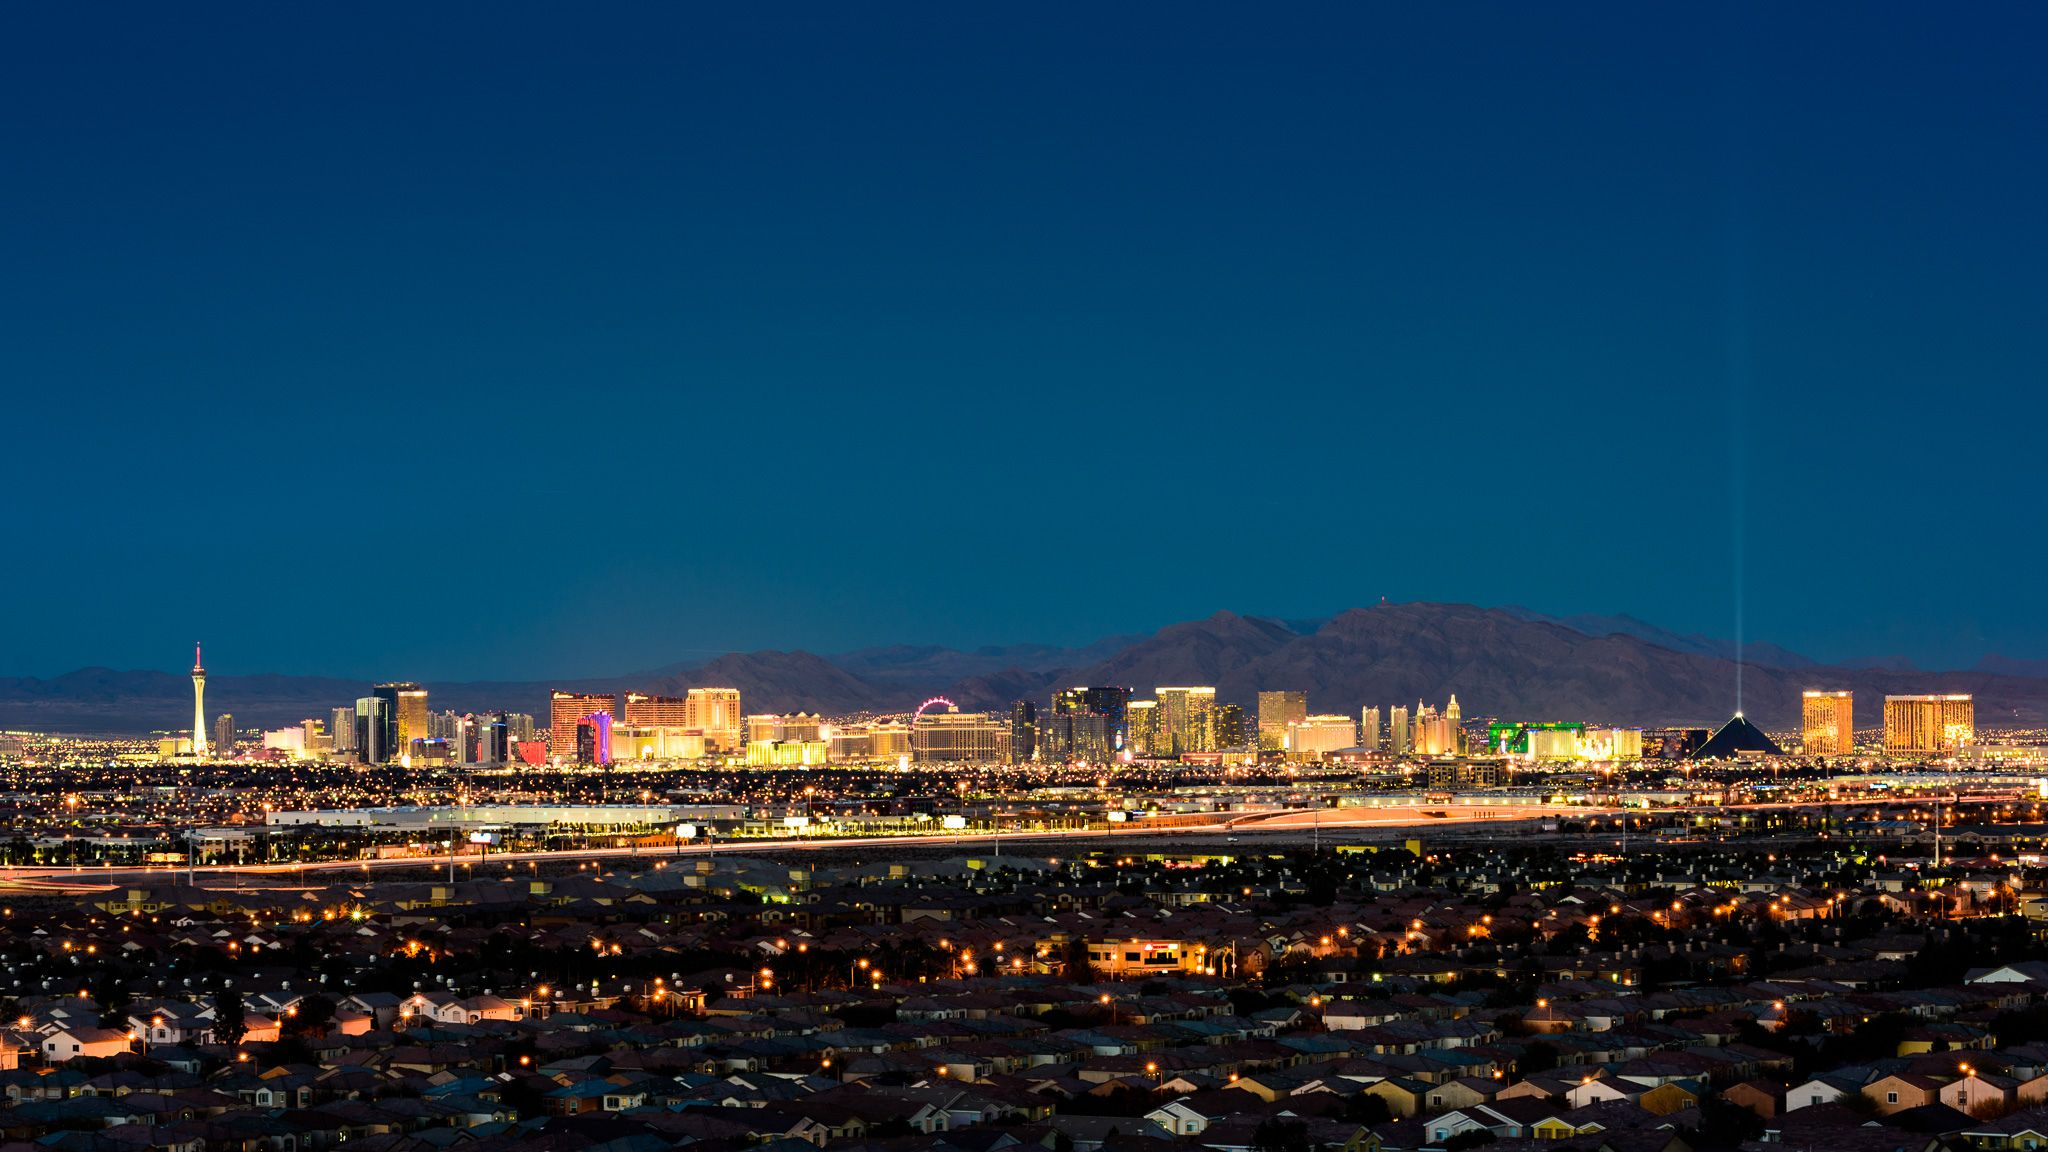 Daily Flights To Las Vegas From New Bedford With No Stops Direct And Return Available Too